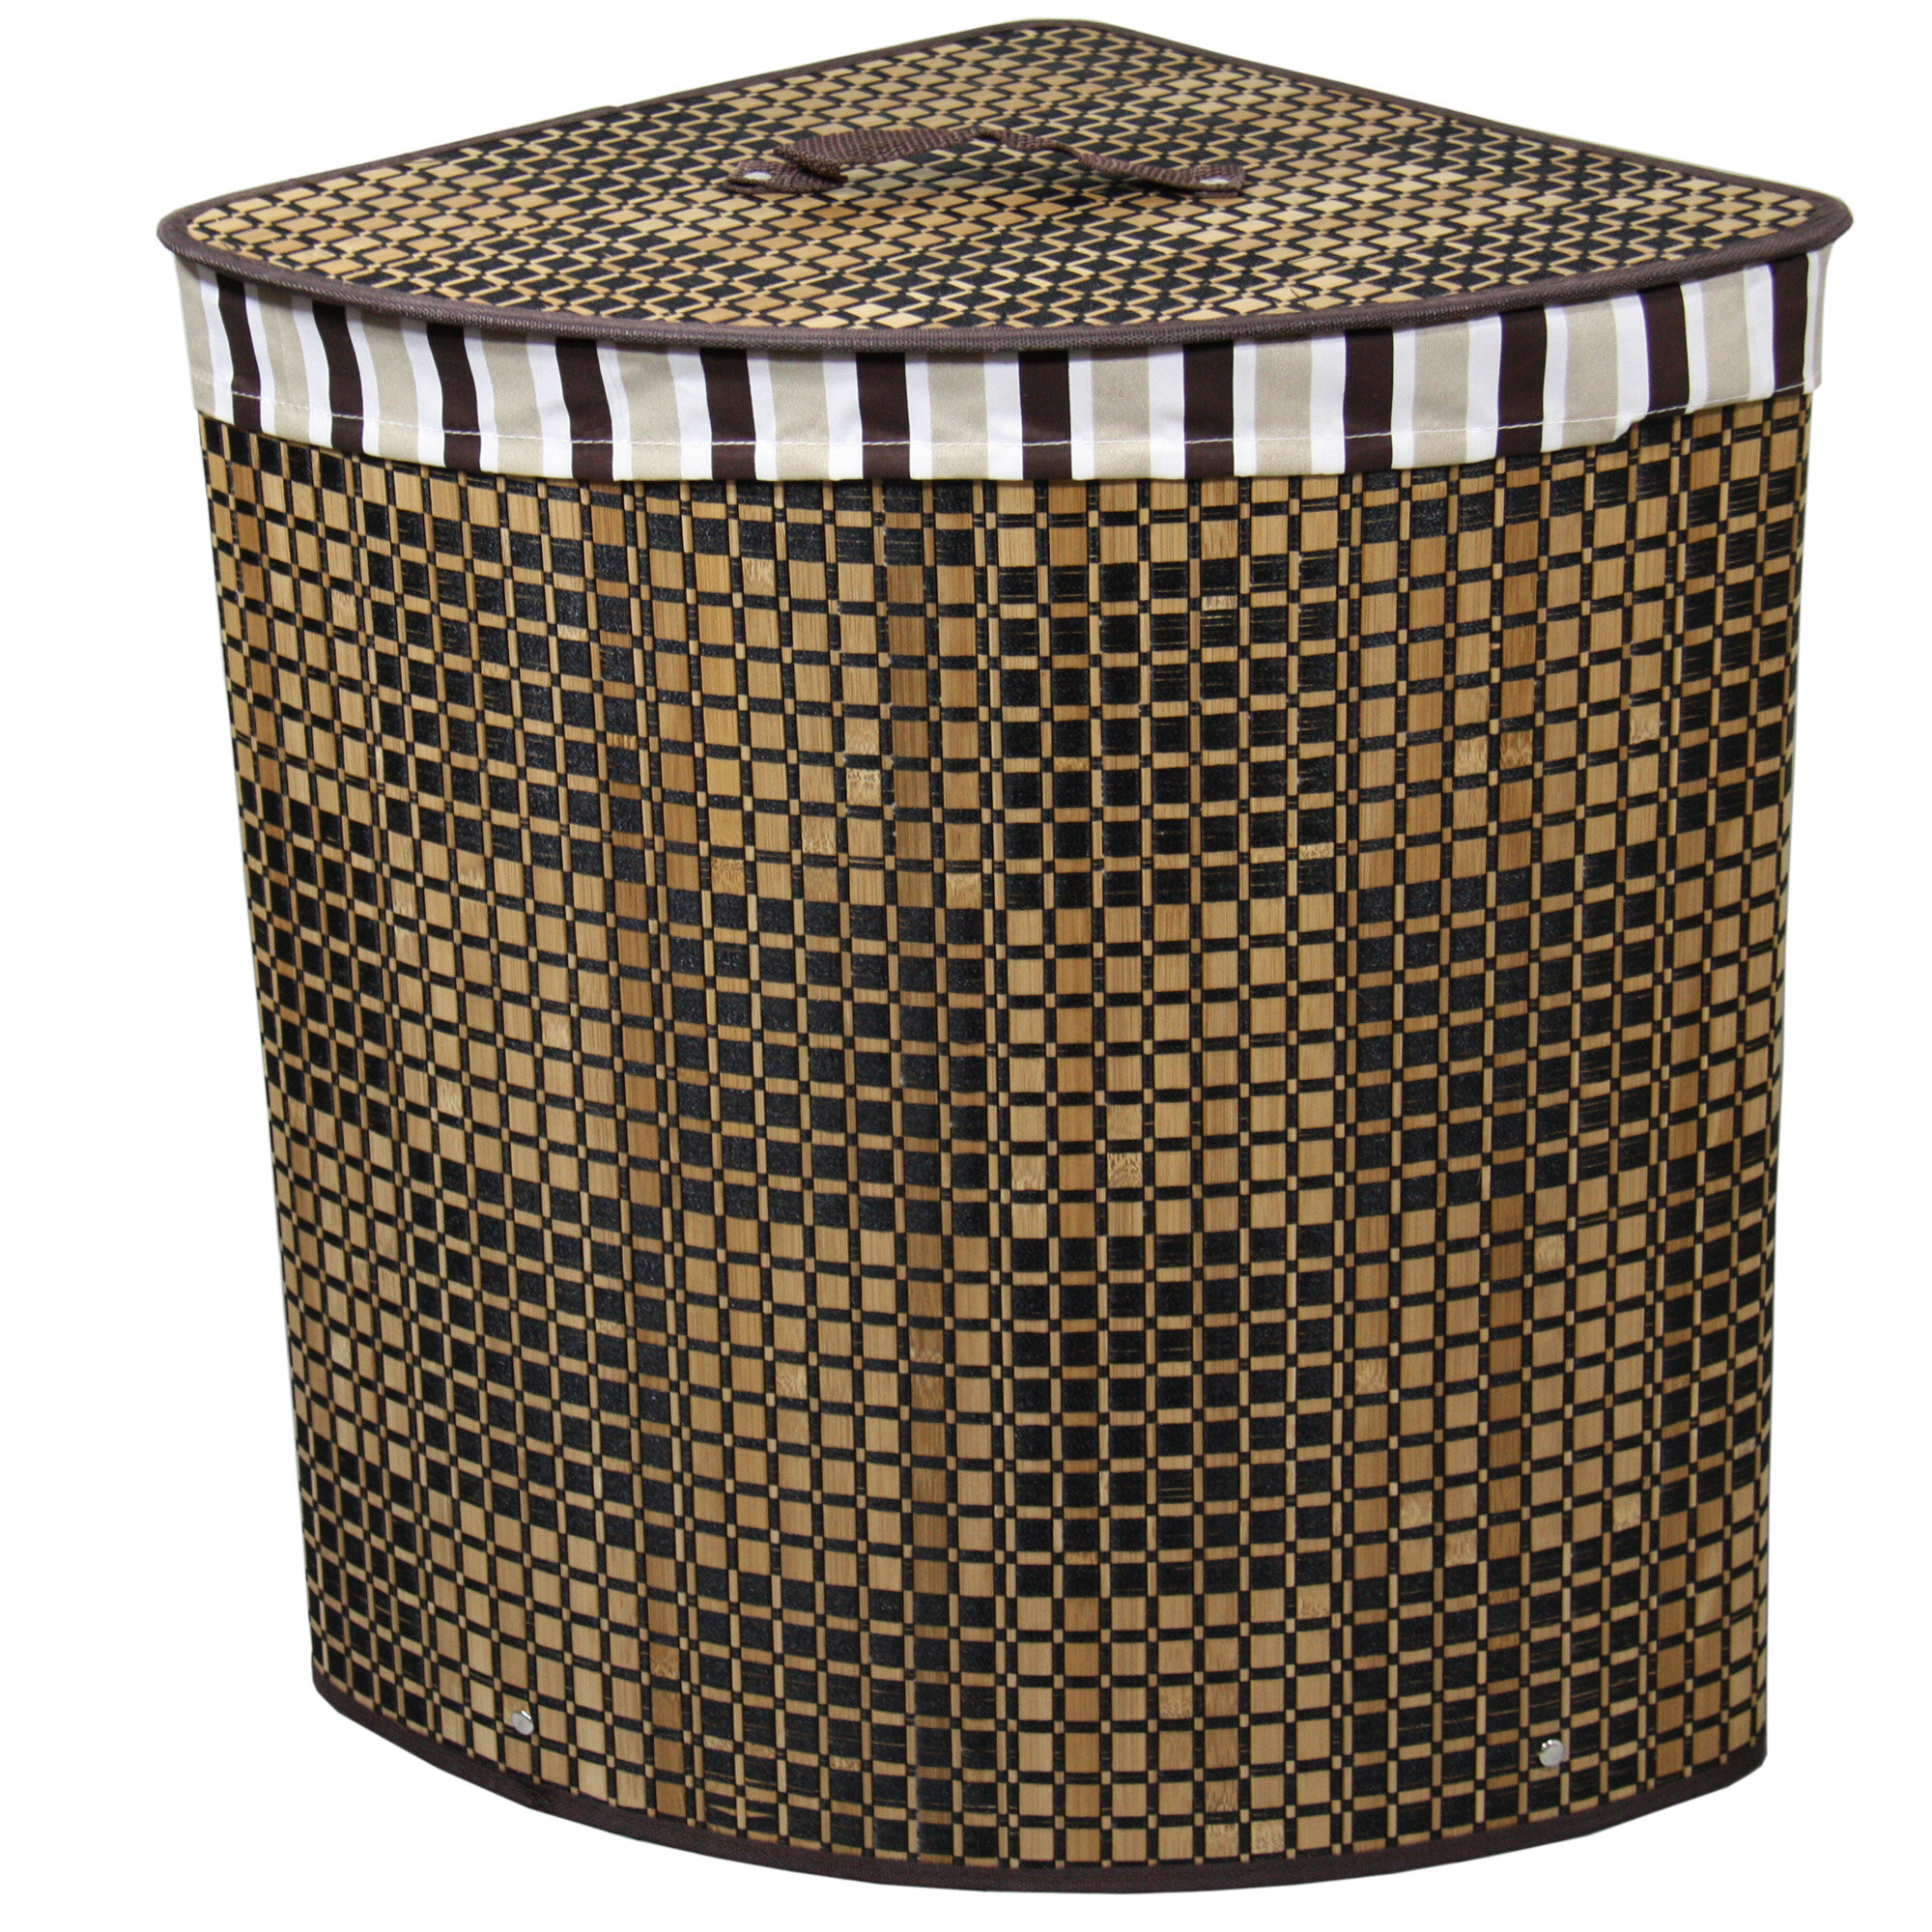 Ore furniture checker print bow front corner laundry hamper reviews wayfair